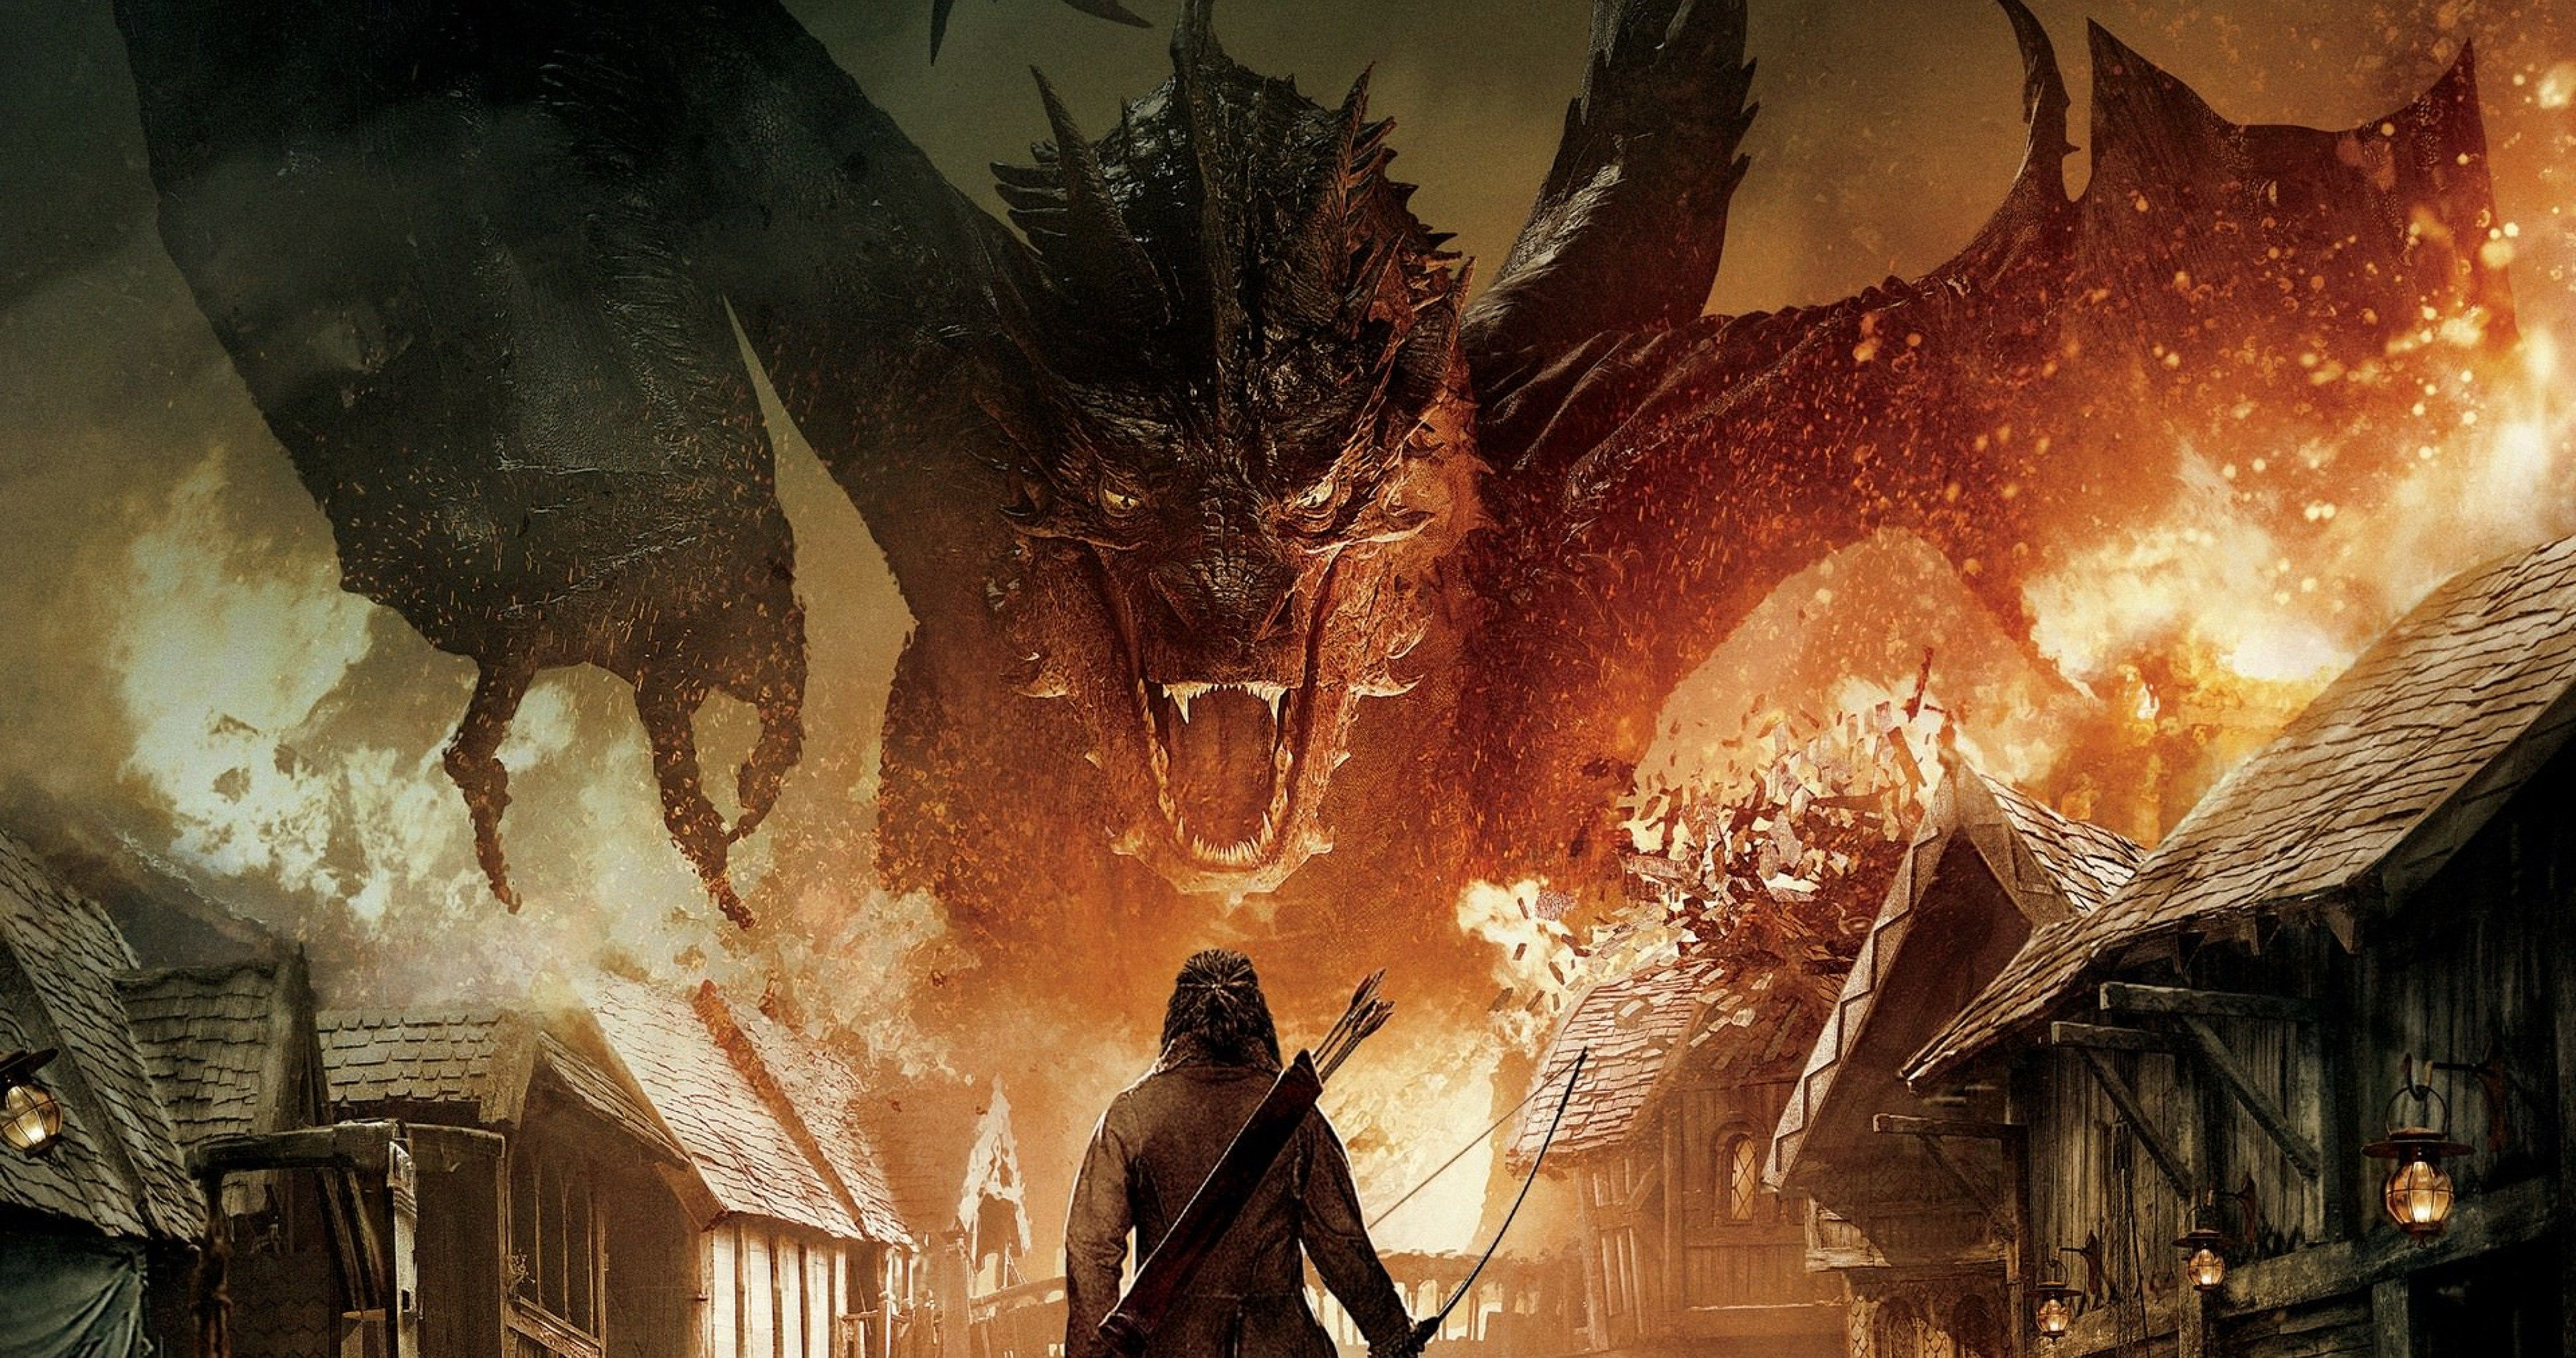 The Hobbit The Battle Of The Five Armies Dragon 4k Ultra Hd Wallpaper The Hobbit Smaug Desolation Of Smaug